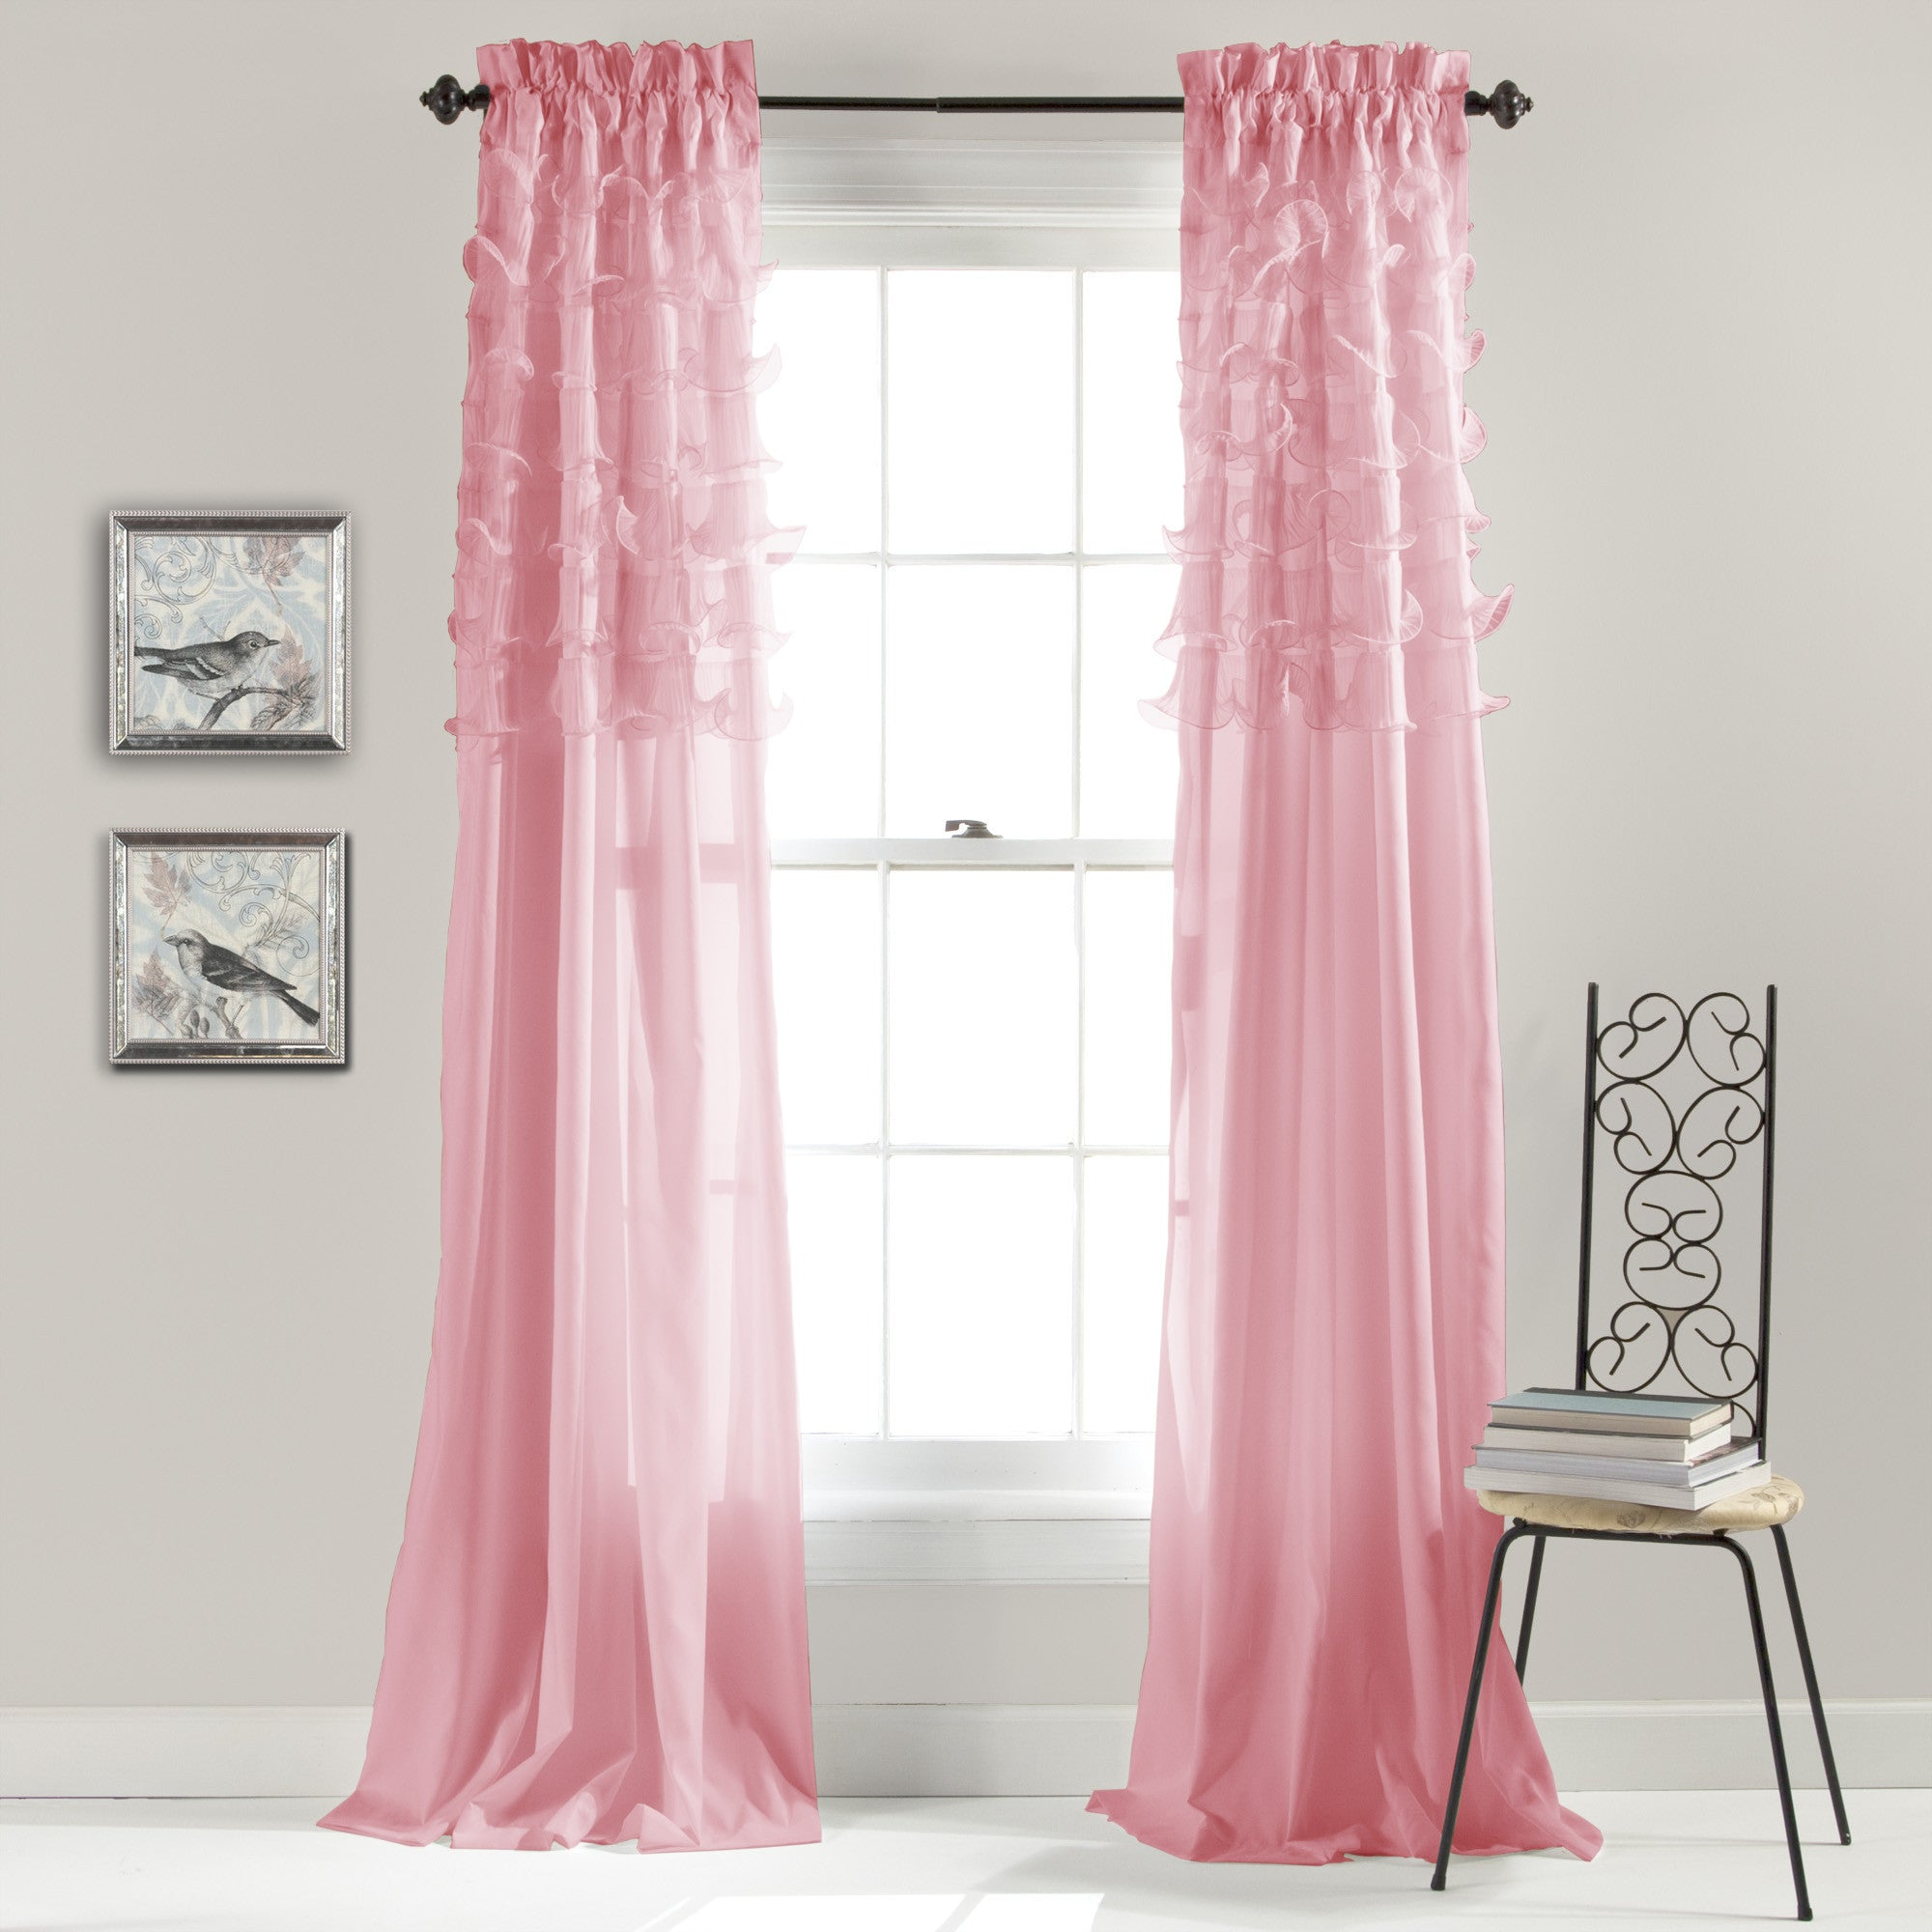 Riley Window Curtain | Lush Decor | www.lushdecor.com